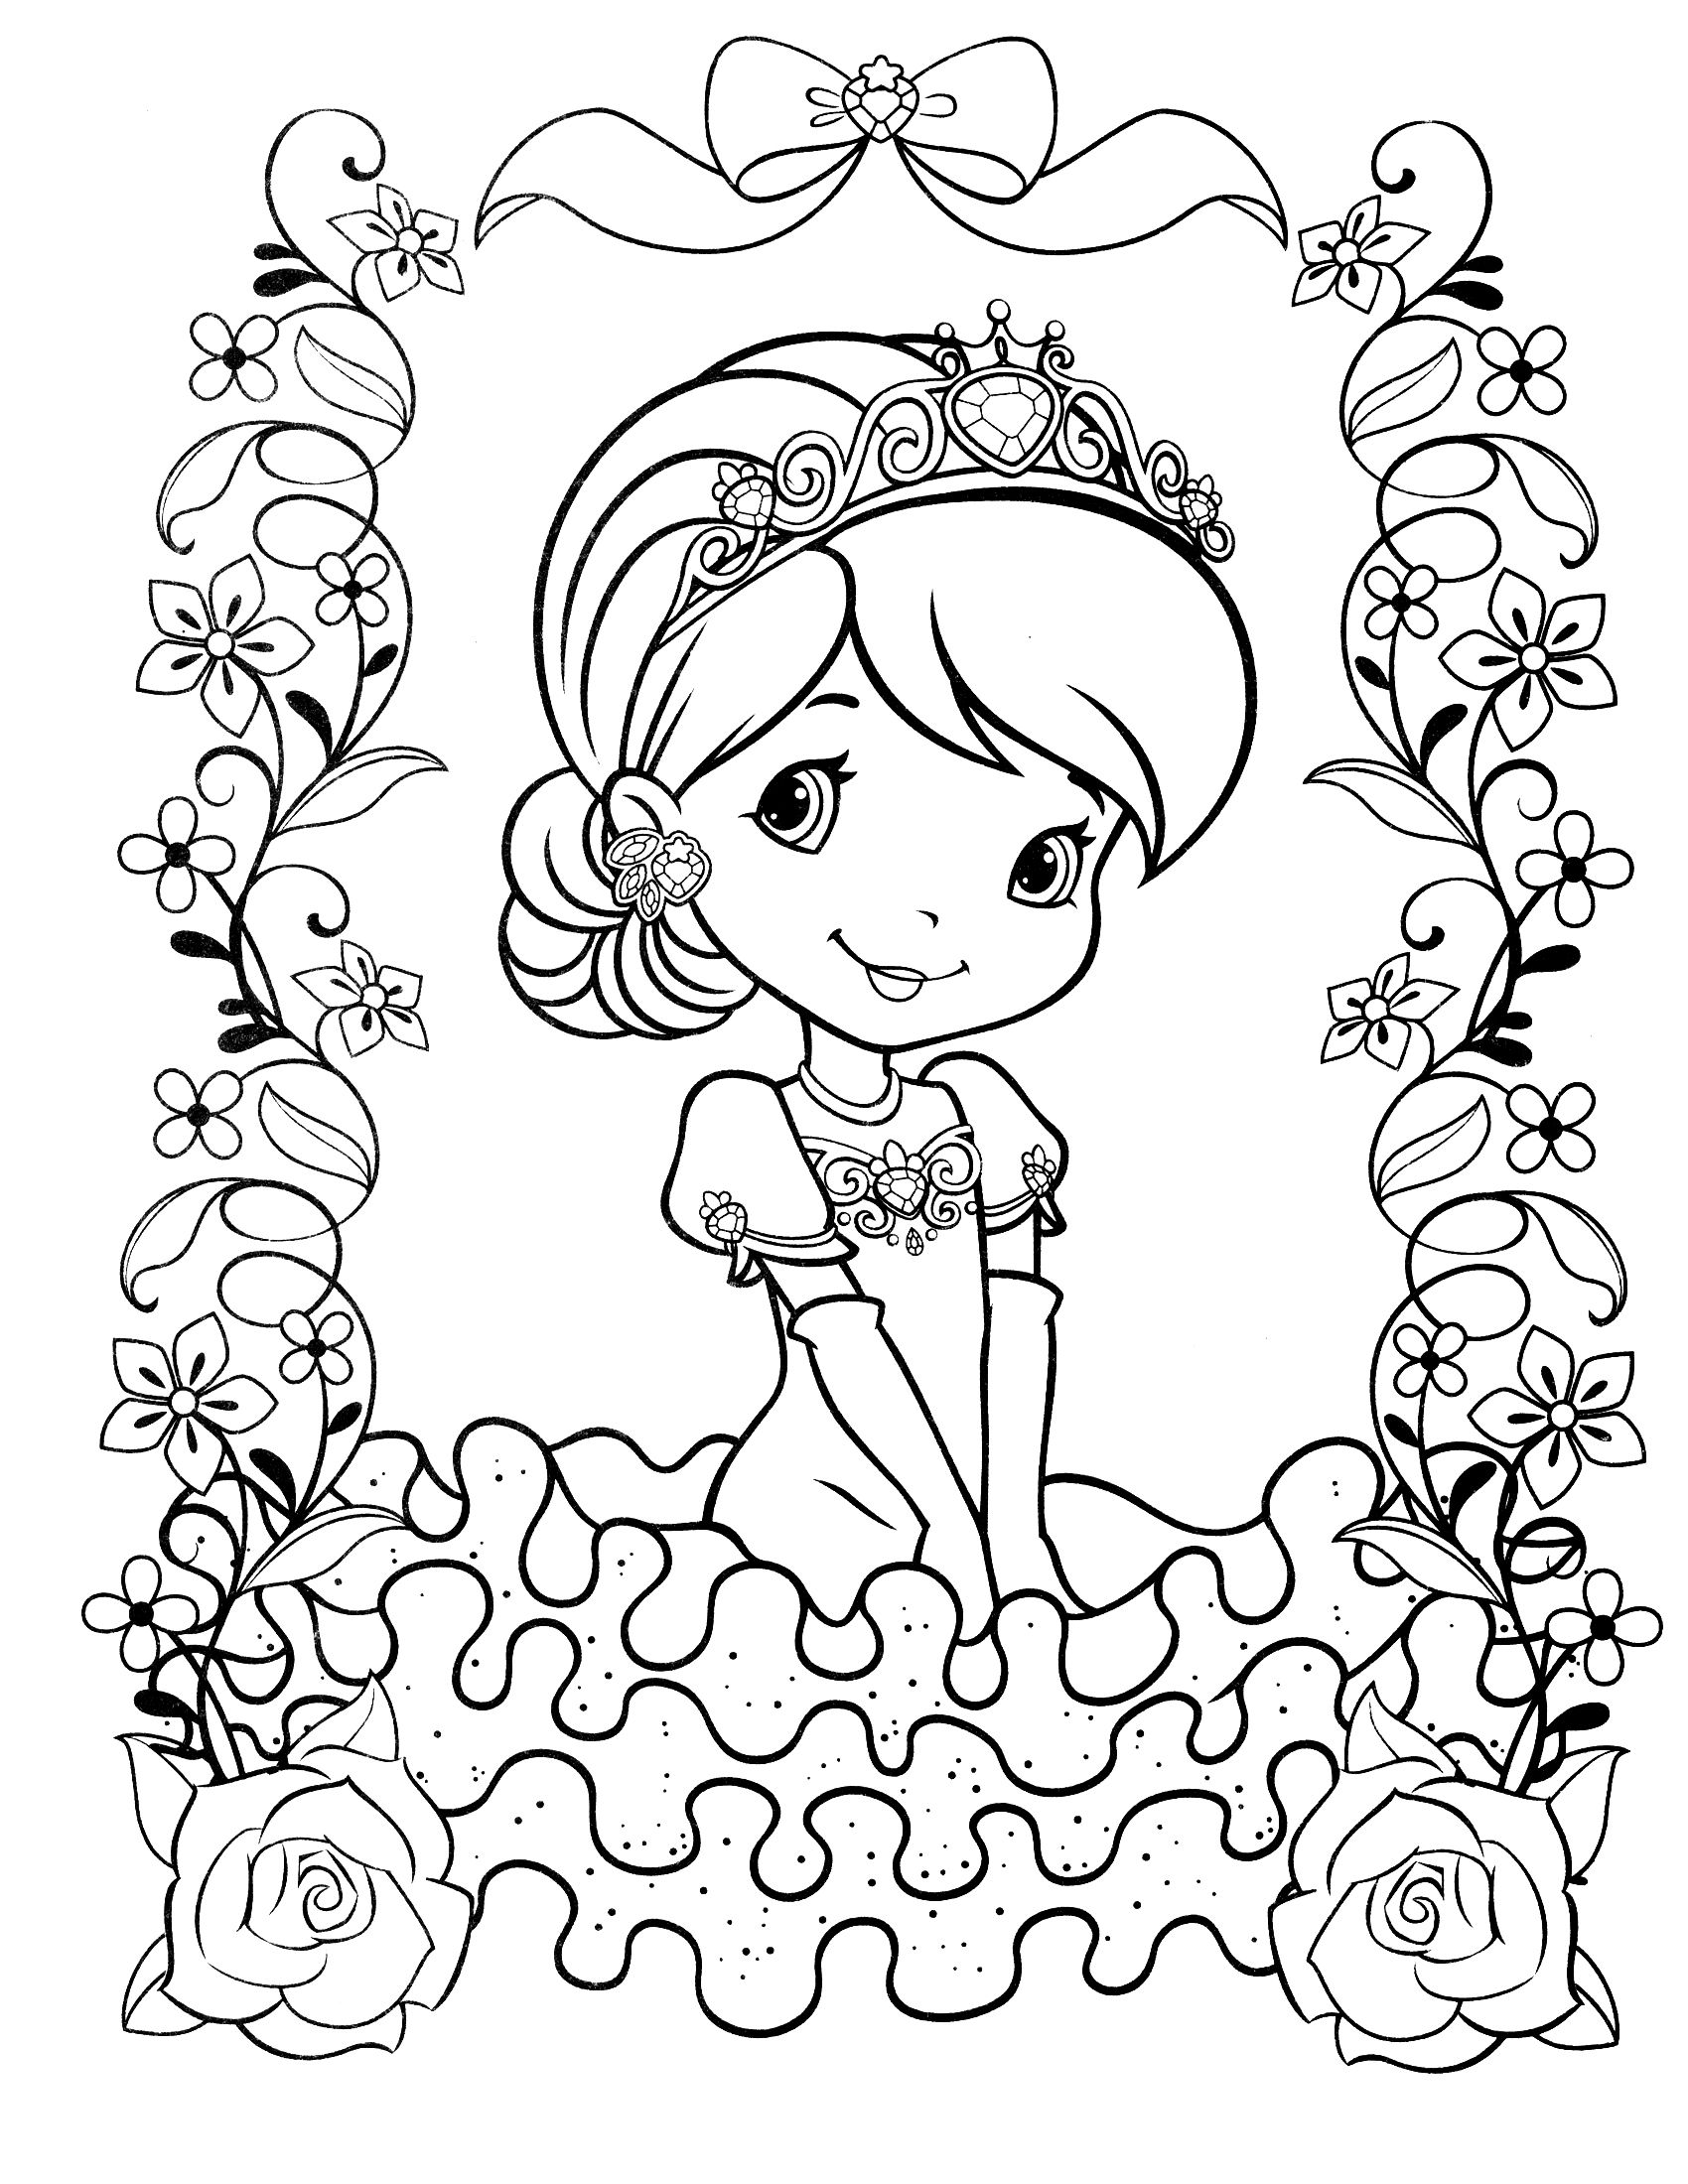 strawberry shortcake coloring page Strawberry Shortcake